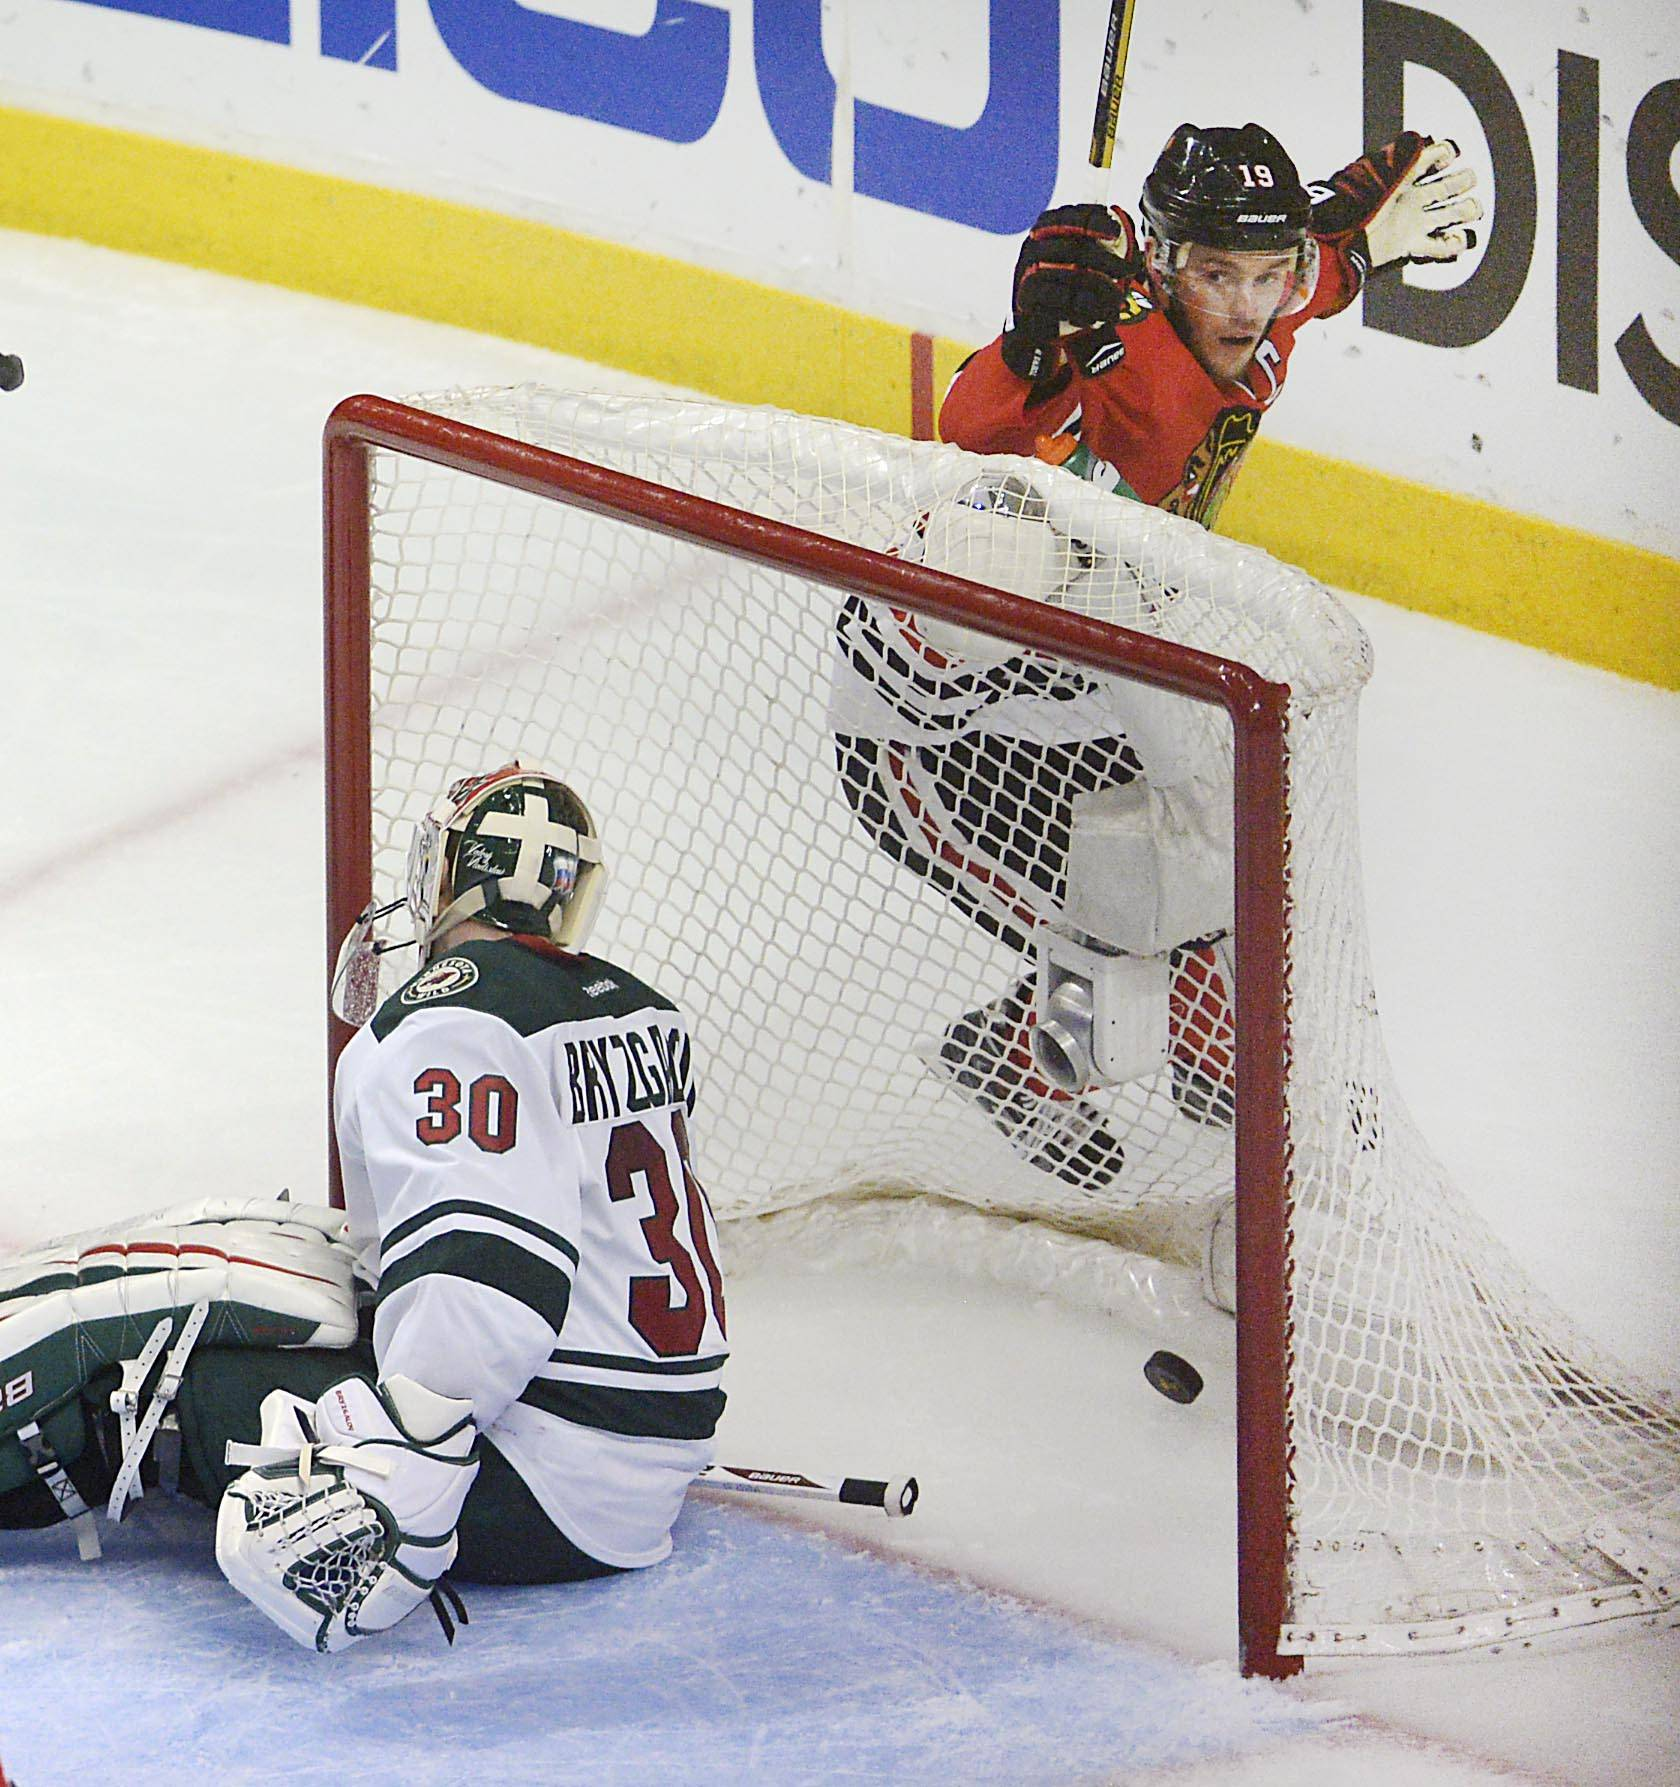 Chicago Blackhawks center Jonathan Toews celebrates after Bryan Bickell's second period goal as he circles the net behind Minnesota Wild goalie Ilya Bryzgalov.